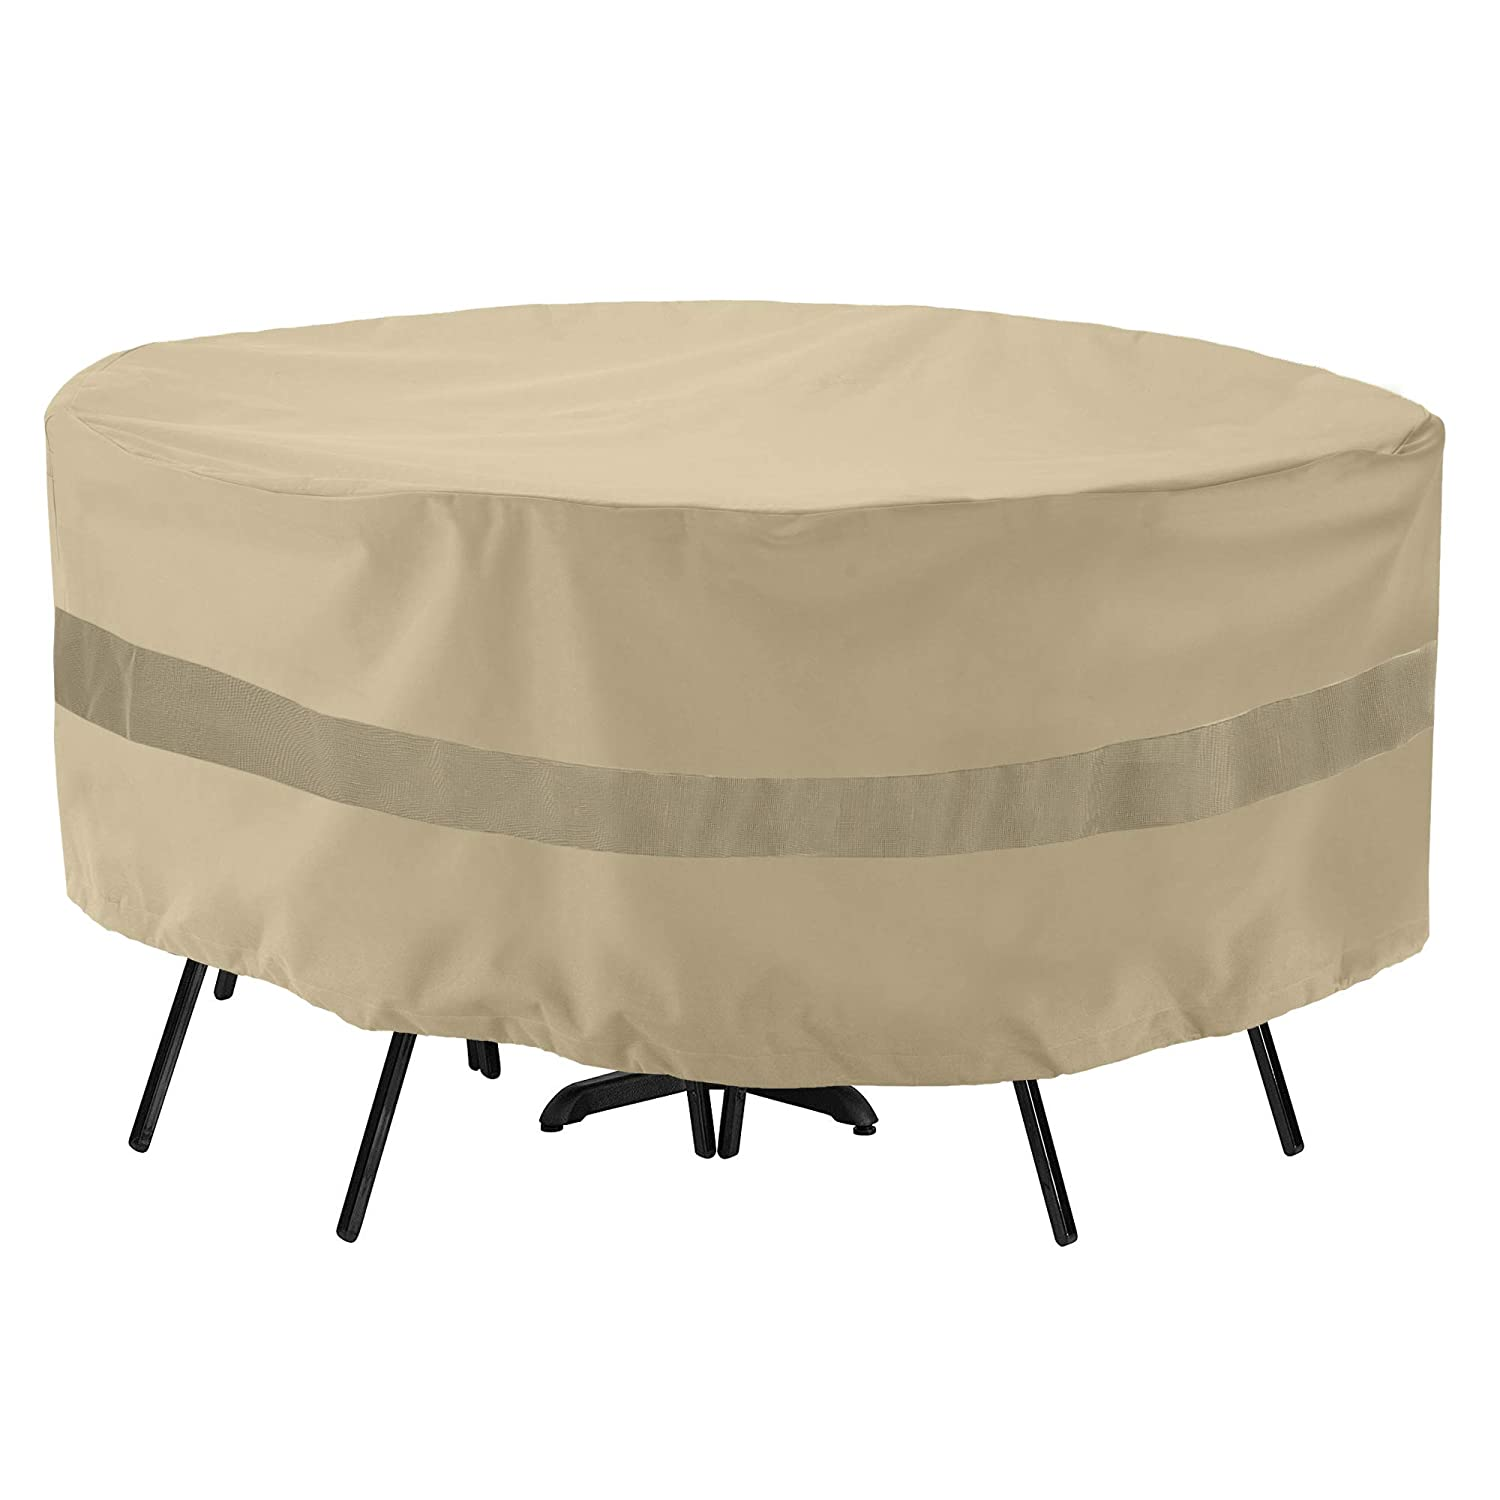 SunPatio Outdoor Table and Chair Cover, Waterproof Round Patio Furniture Set Cover with Sealed Seam, Heavy Duty Dining Table Set Cover 72 Dia x 30 H, All Weather Protection, Beige